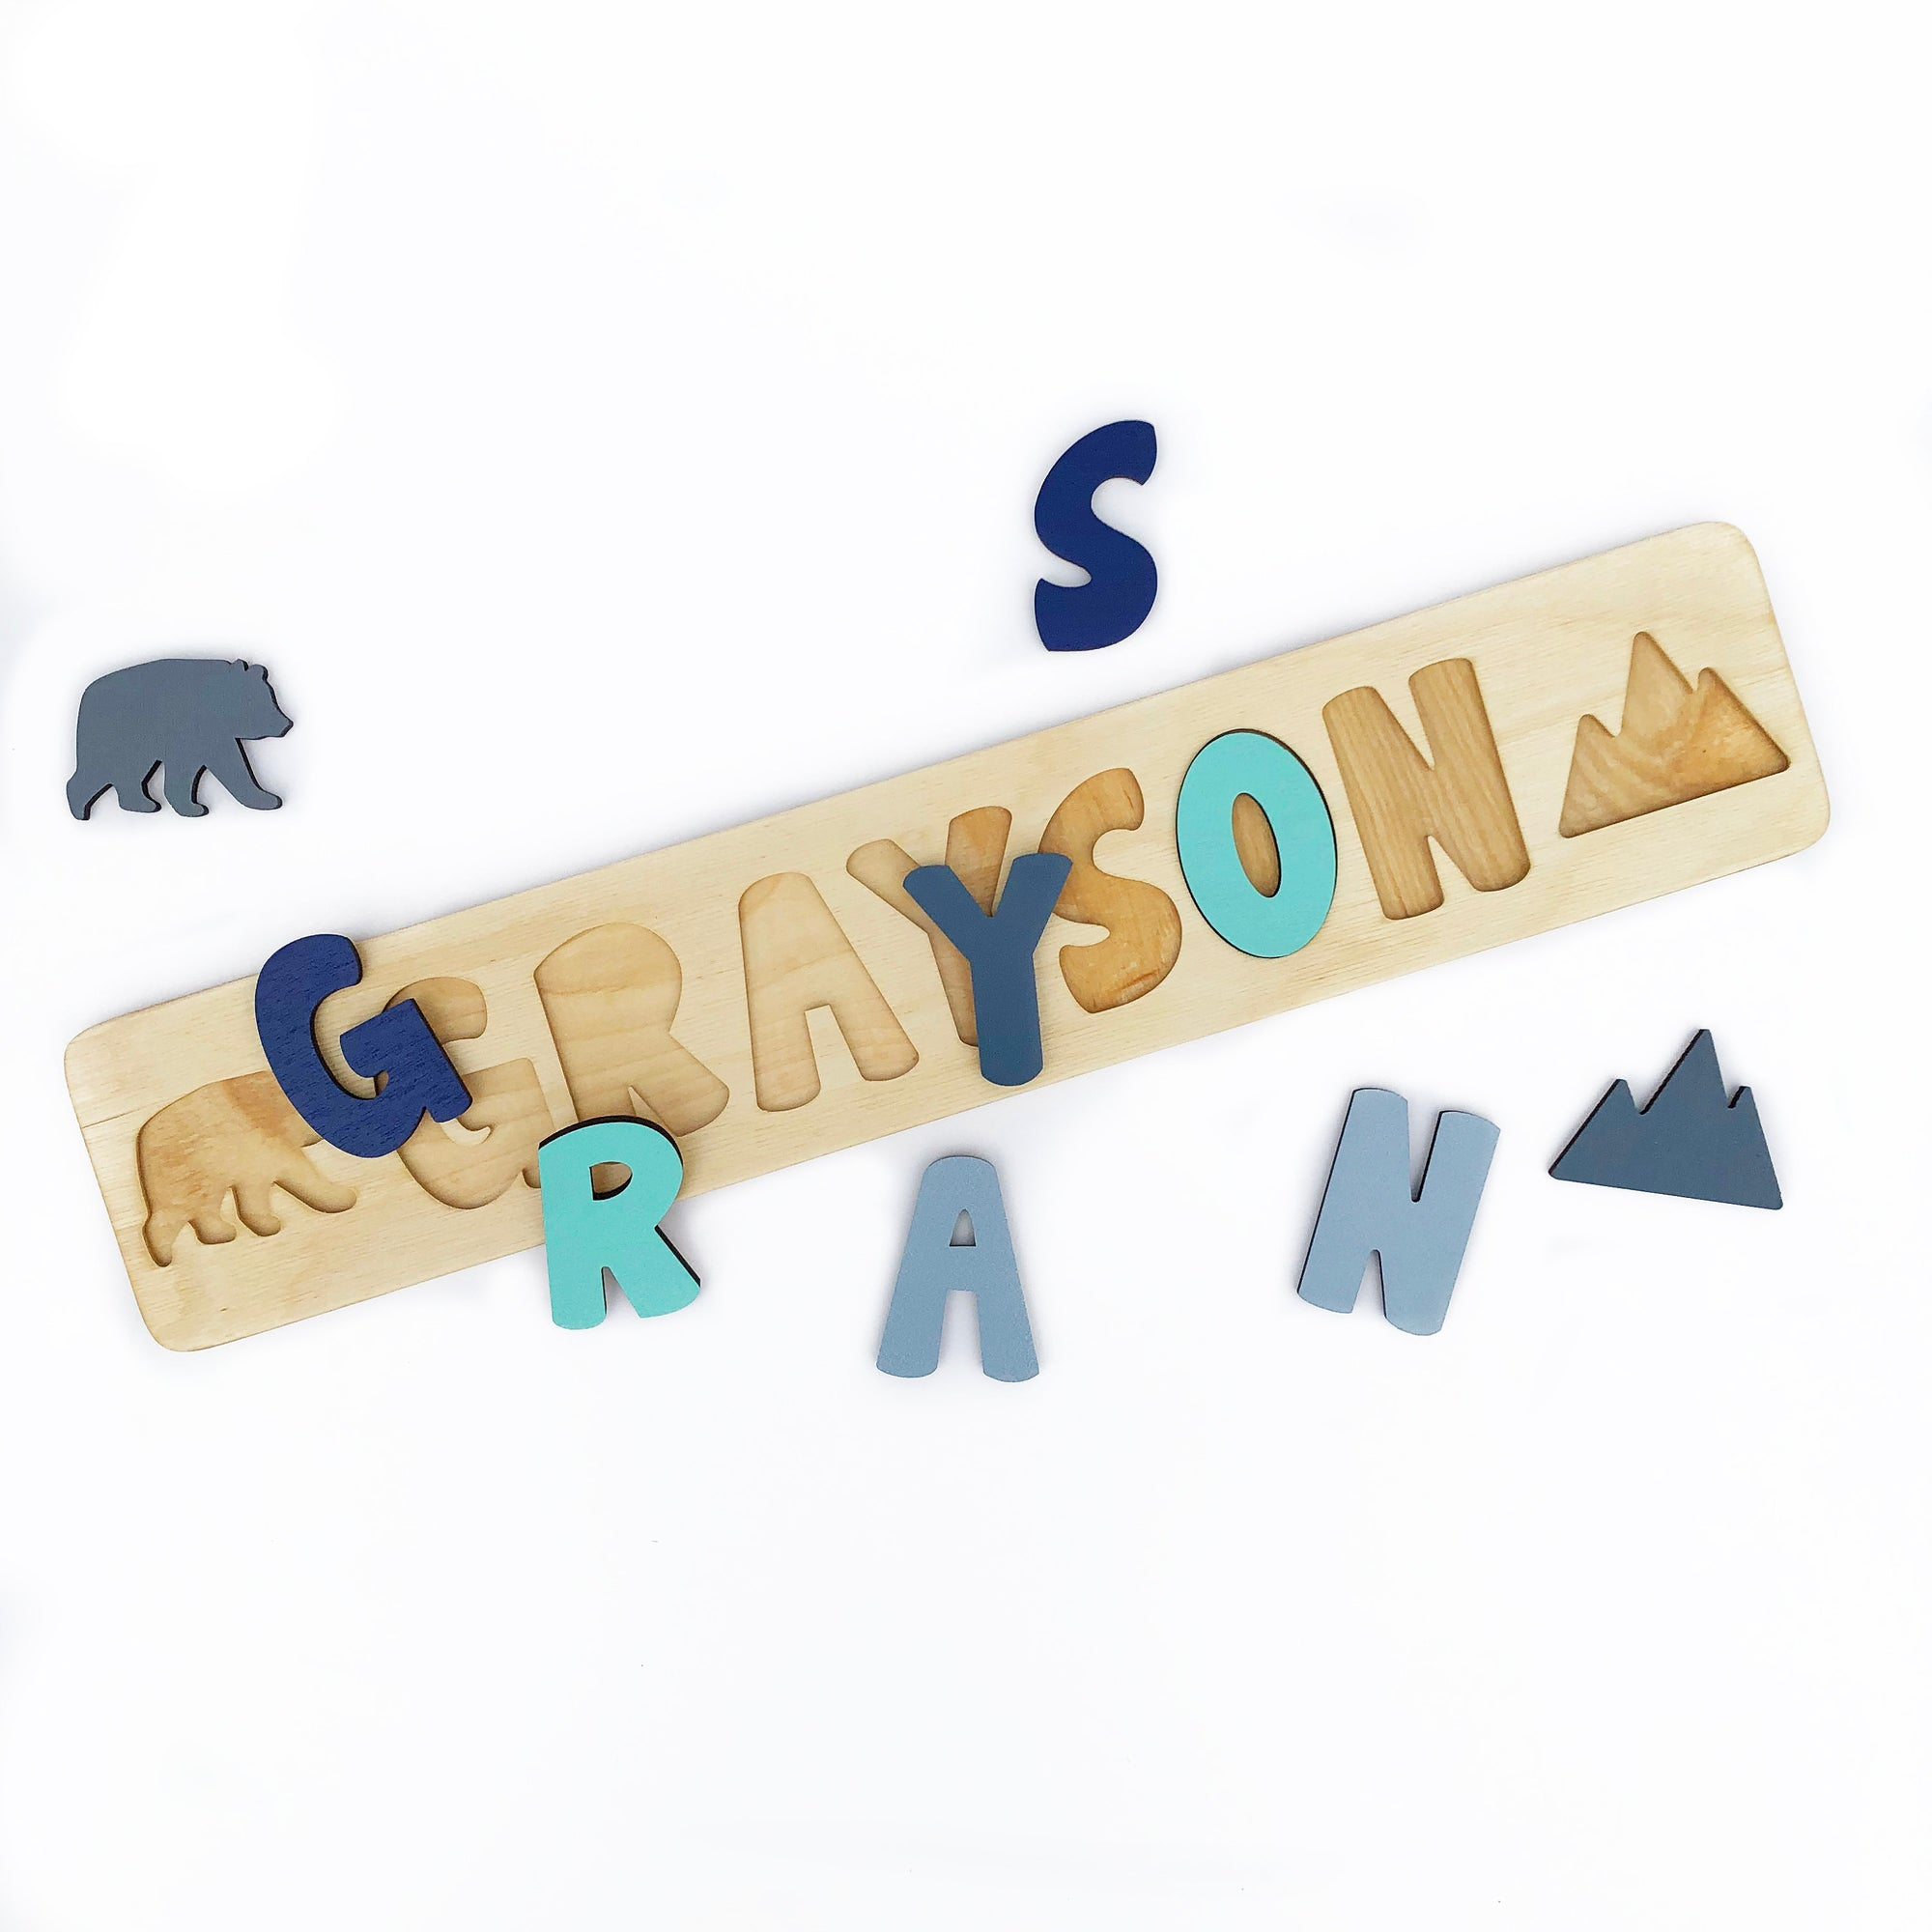 Wooden Name Puzzle with Bear and Mountain, Personalized Gift for Toddlers